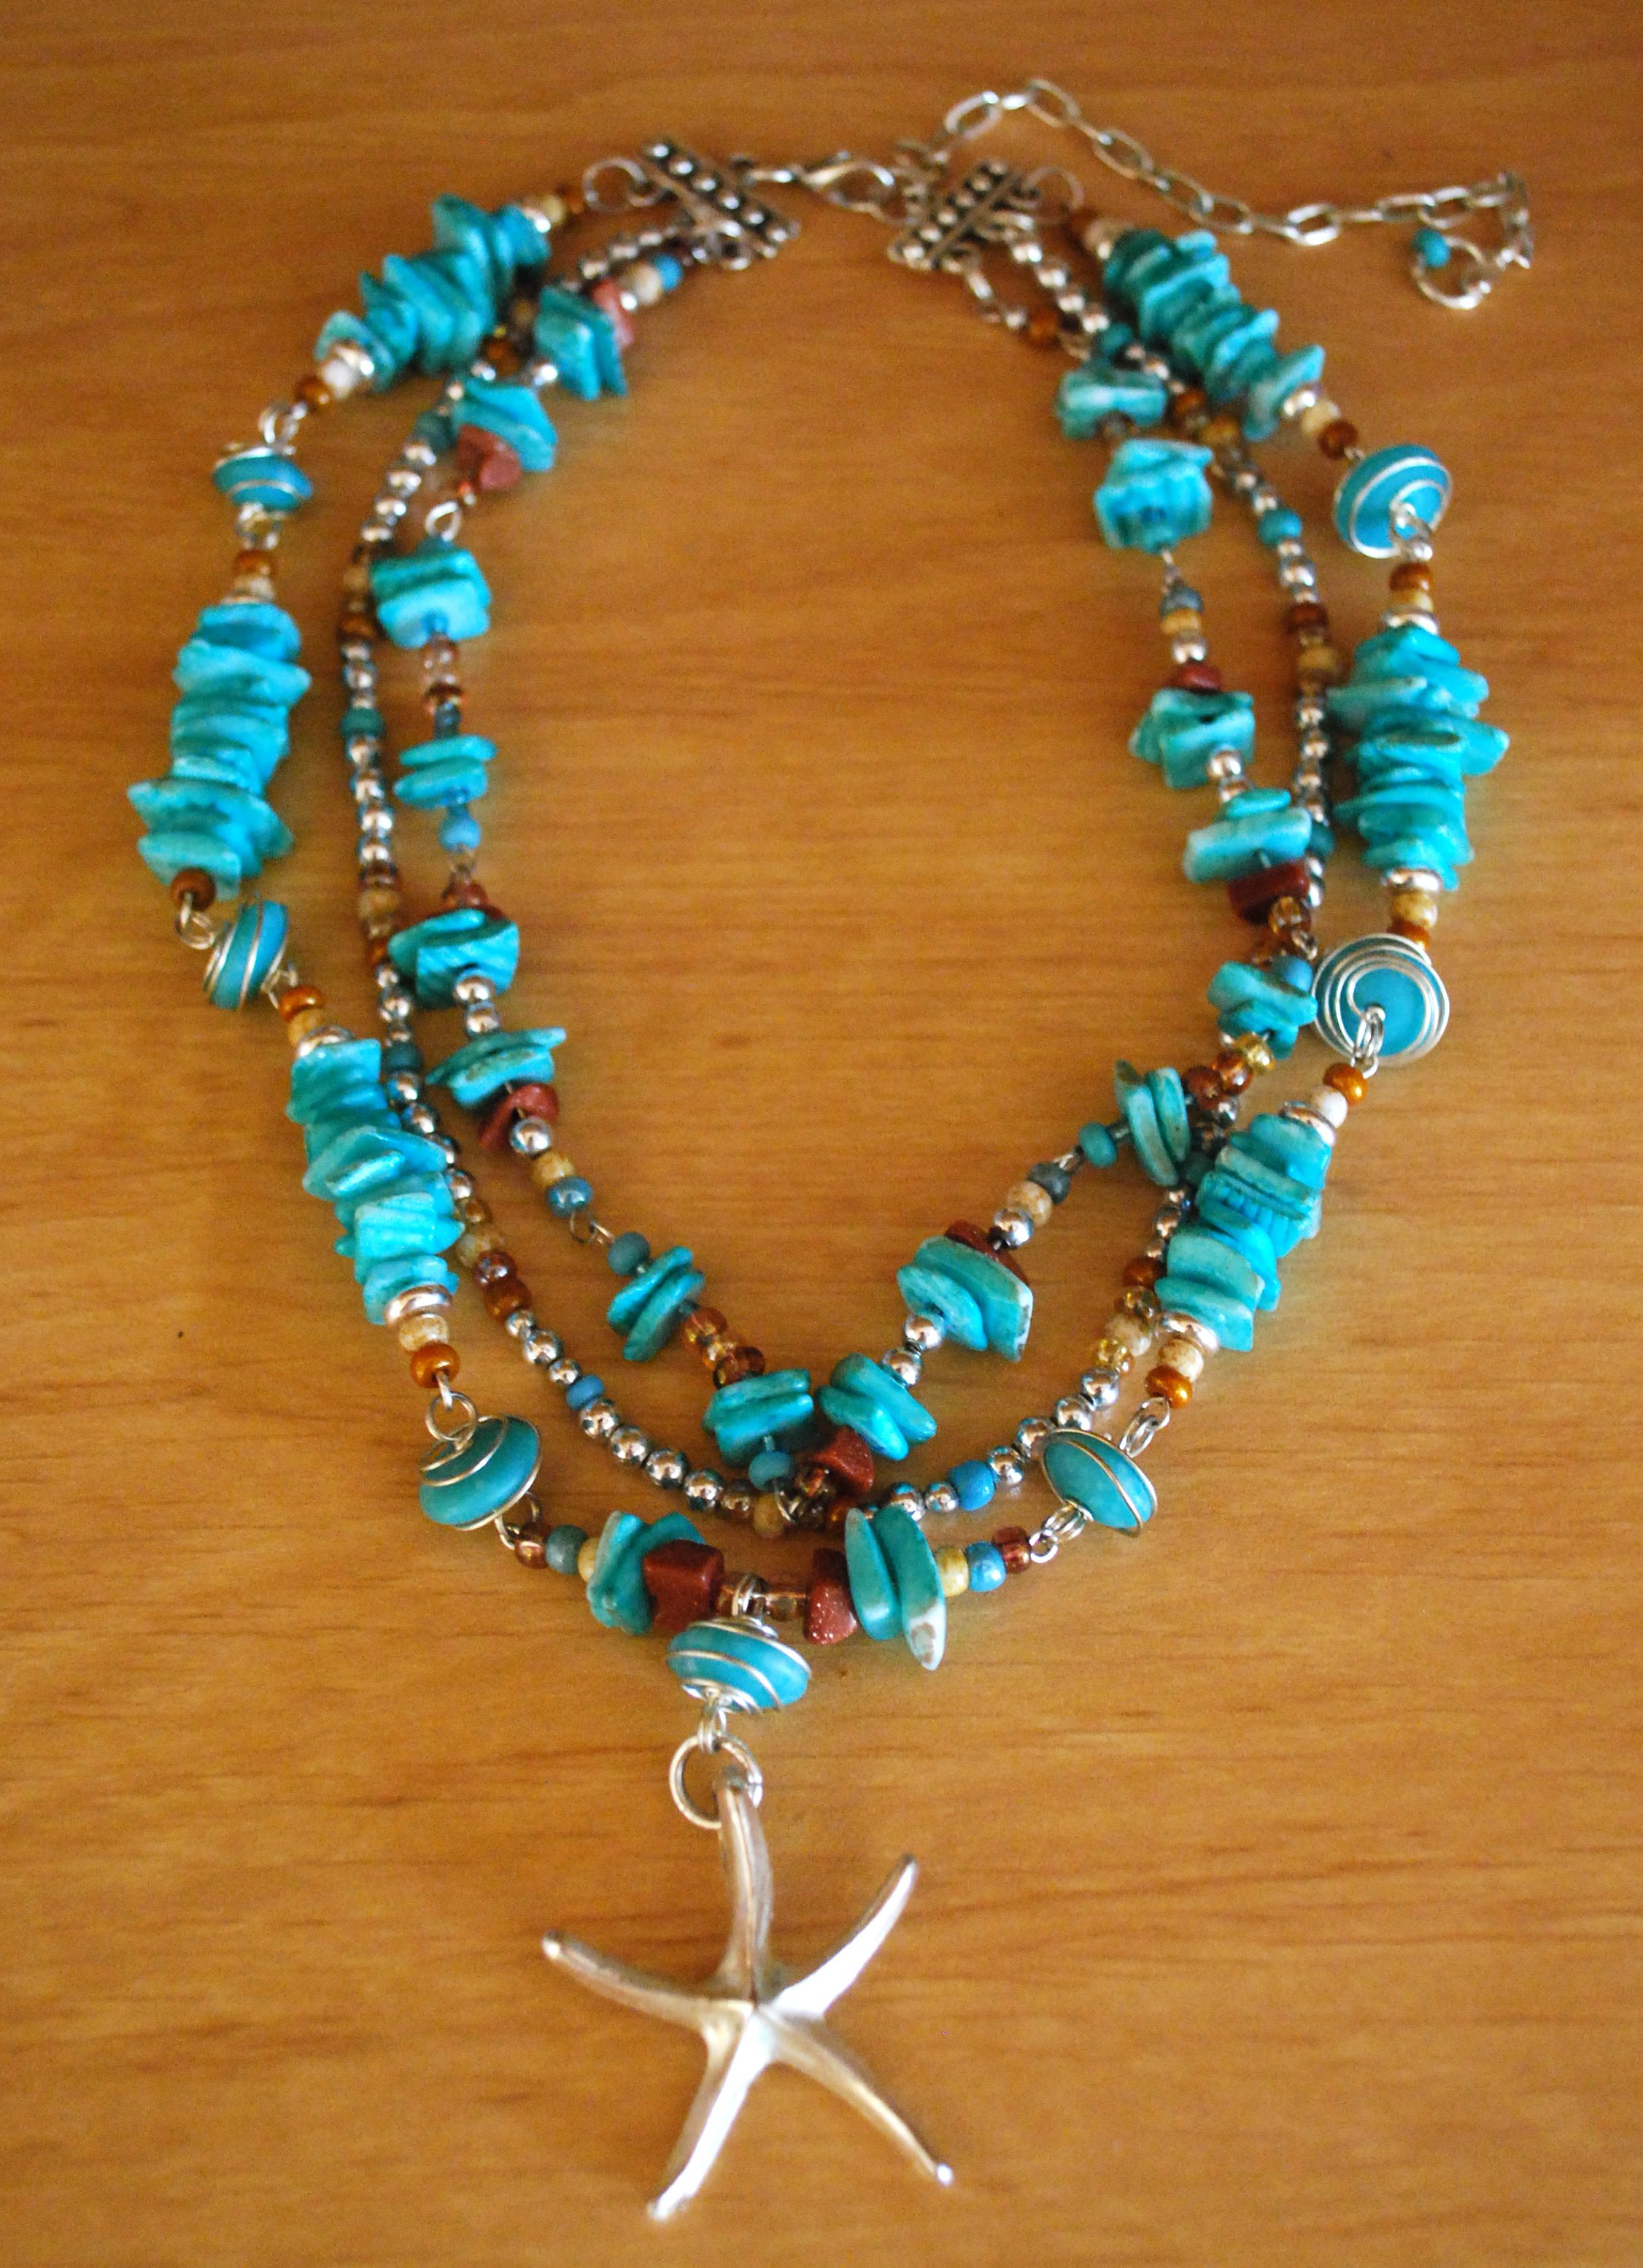 with stranded beads rose layer maroon bead turquoise glass double jewelry necklace beaded handmade buy products online